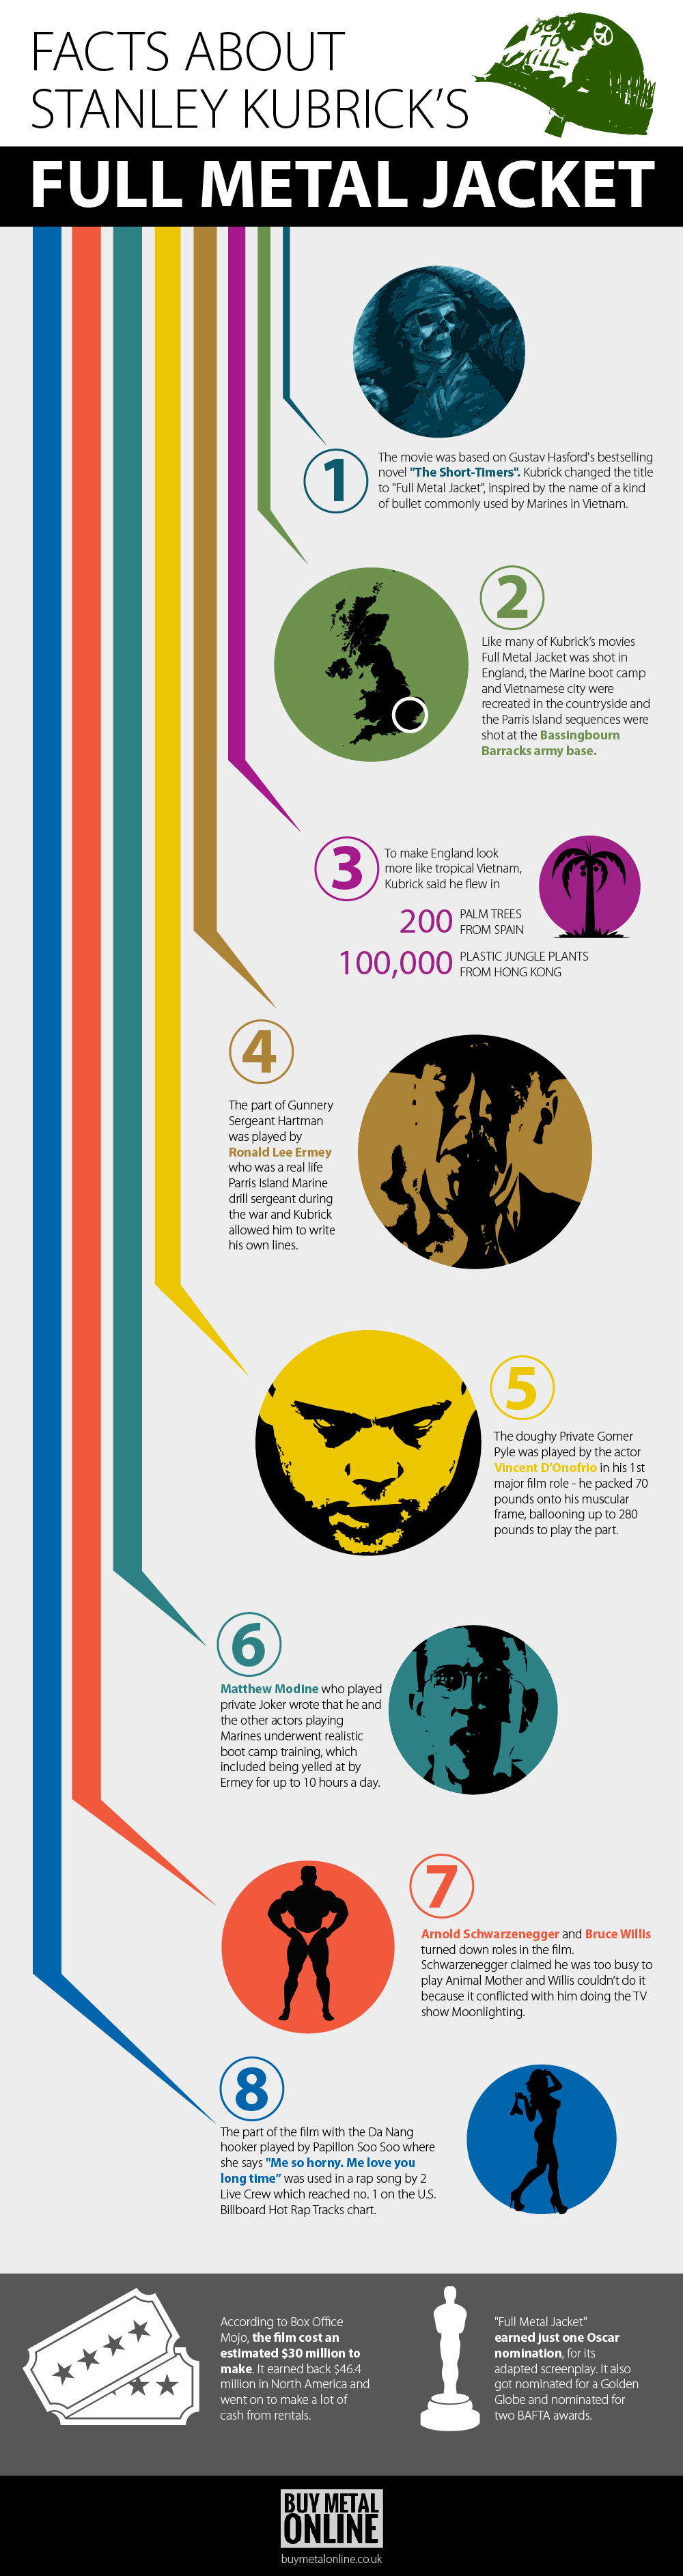 facts about stanley kubrick's full metal jacket, infographic